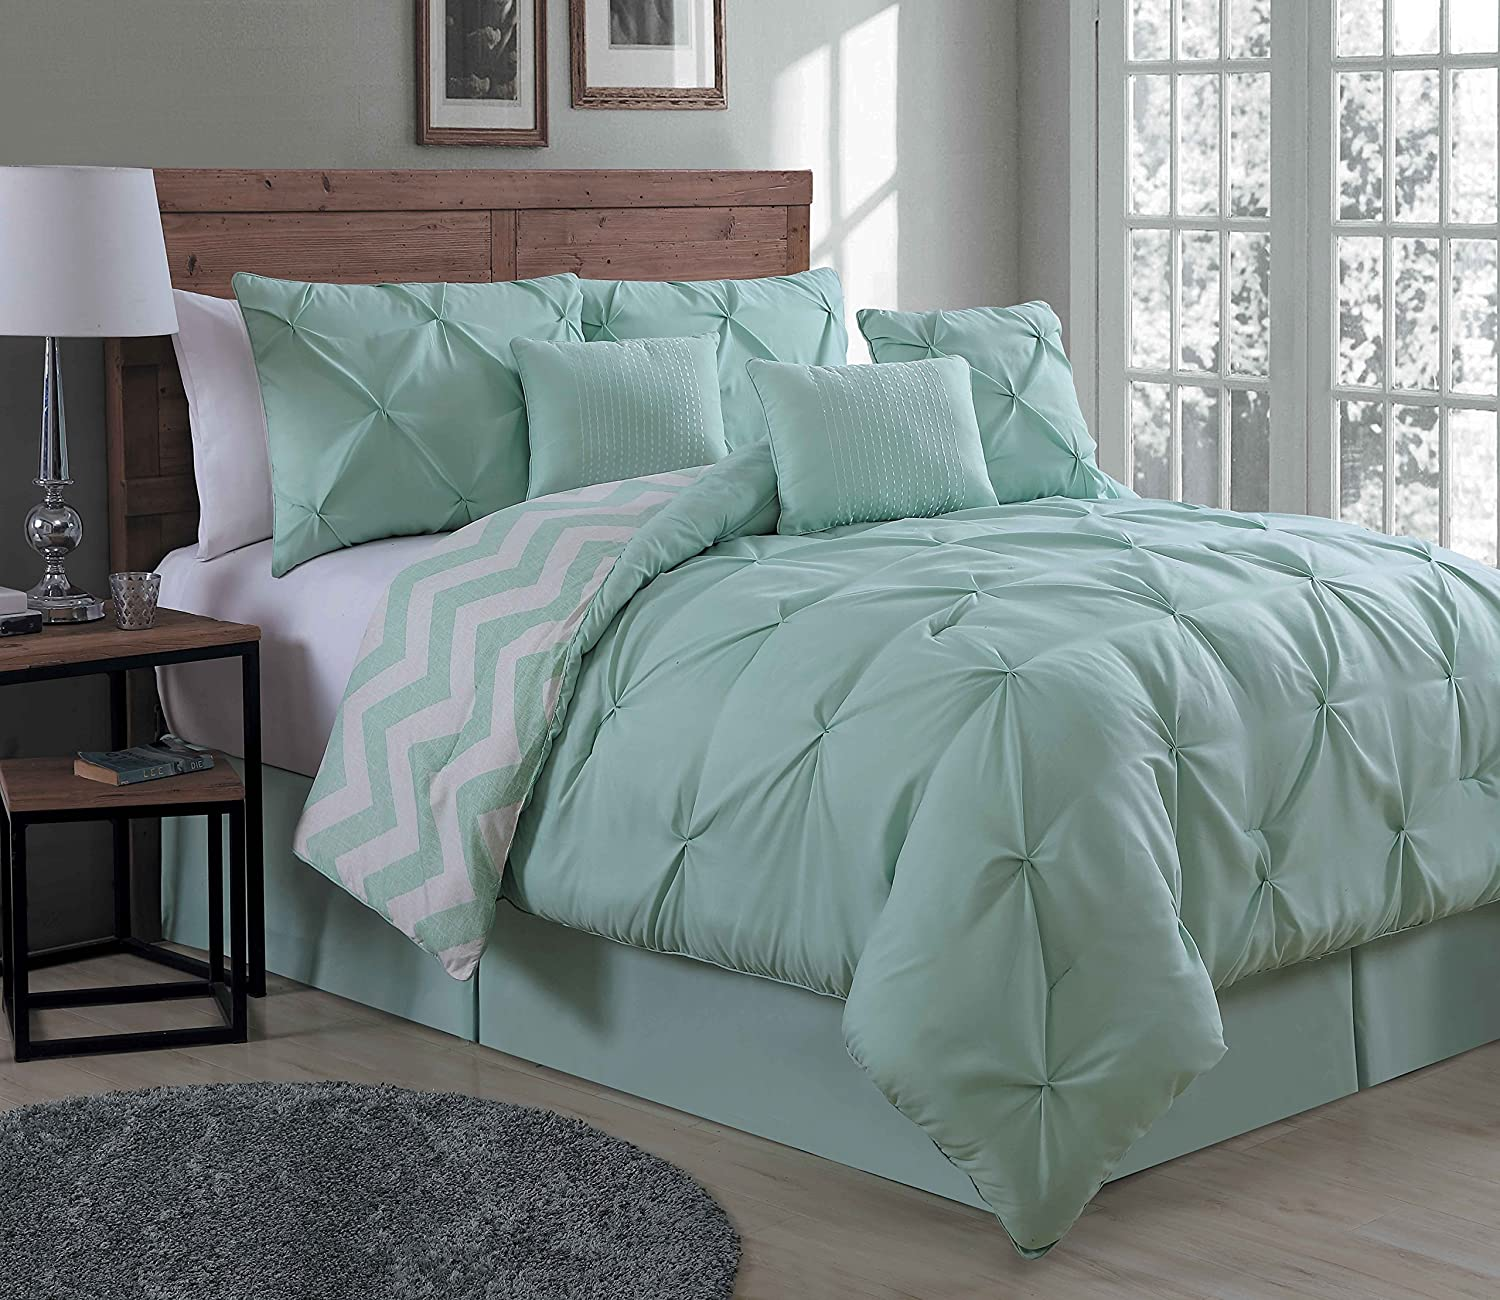 well cover seafoam size in plus mint nursery target set floral sets duvet queen comforter beddings forest emerald velvet sale with conjunction also and bedding grey green of full as for hunter bedspreads sage together